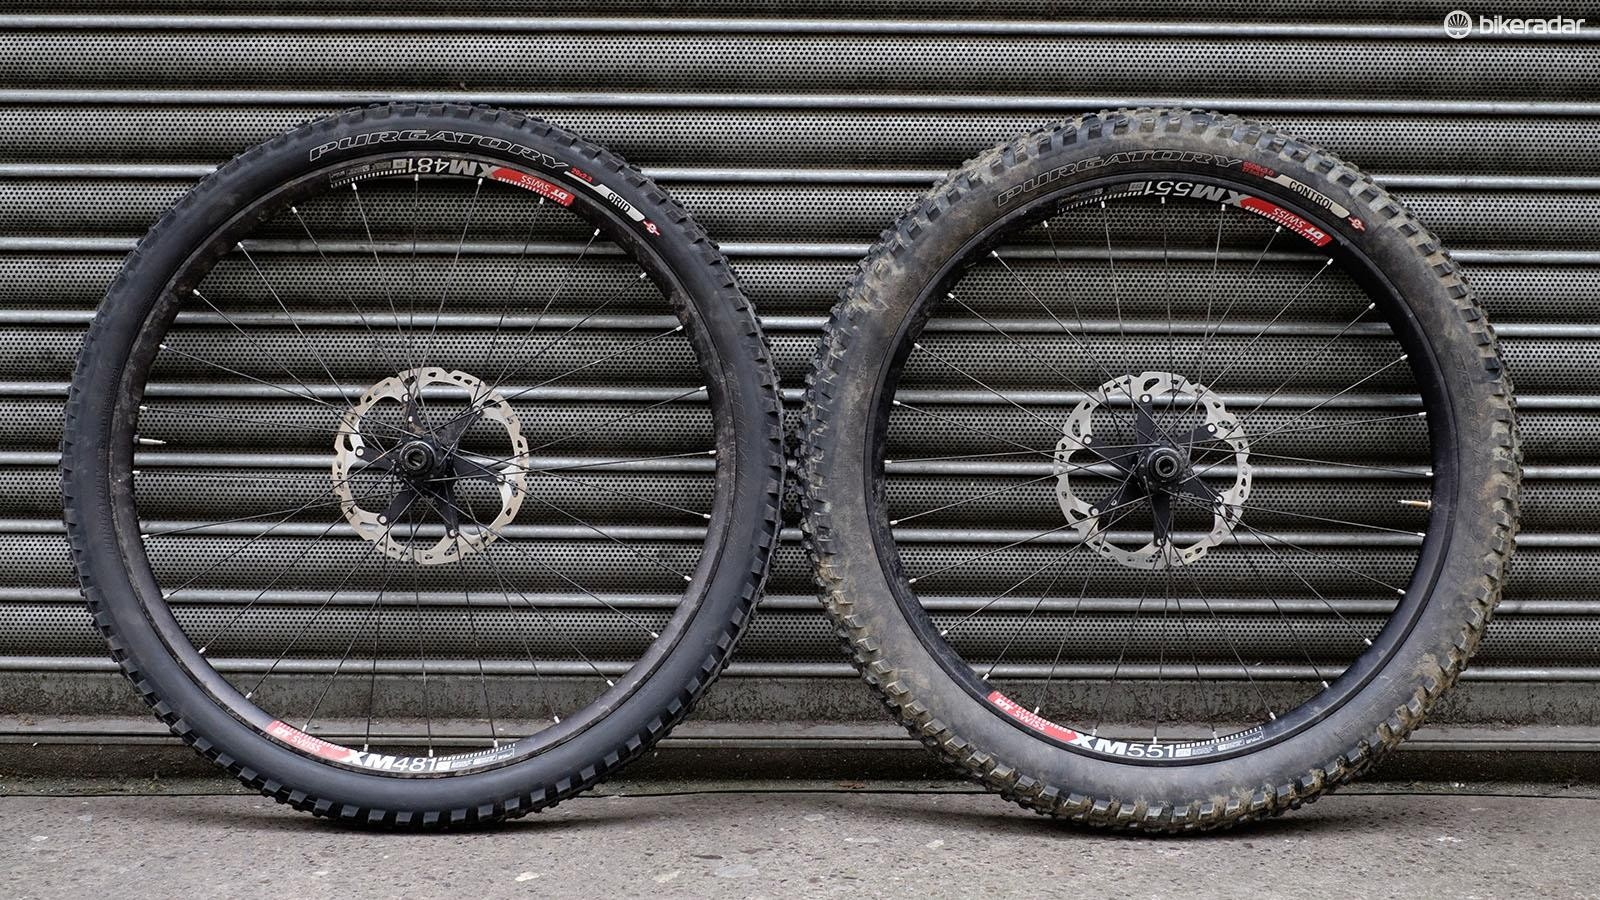 The 29x2.3in tires were about 8mm larger in diameter than the 27.5x3in rubber, resulting in a 4mm higher bottom bracket